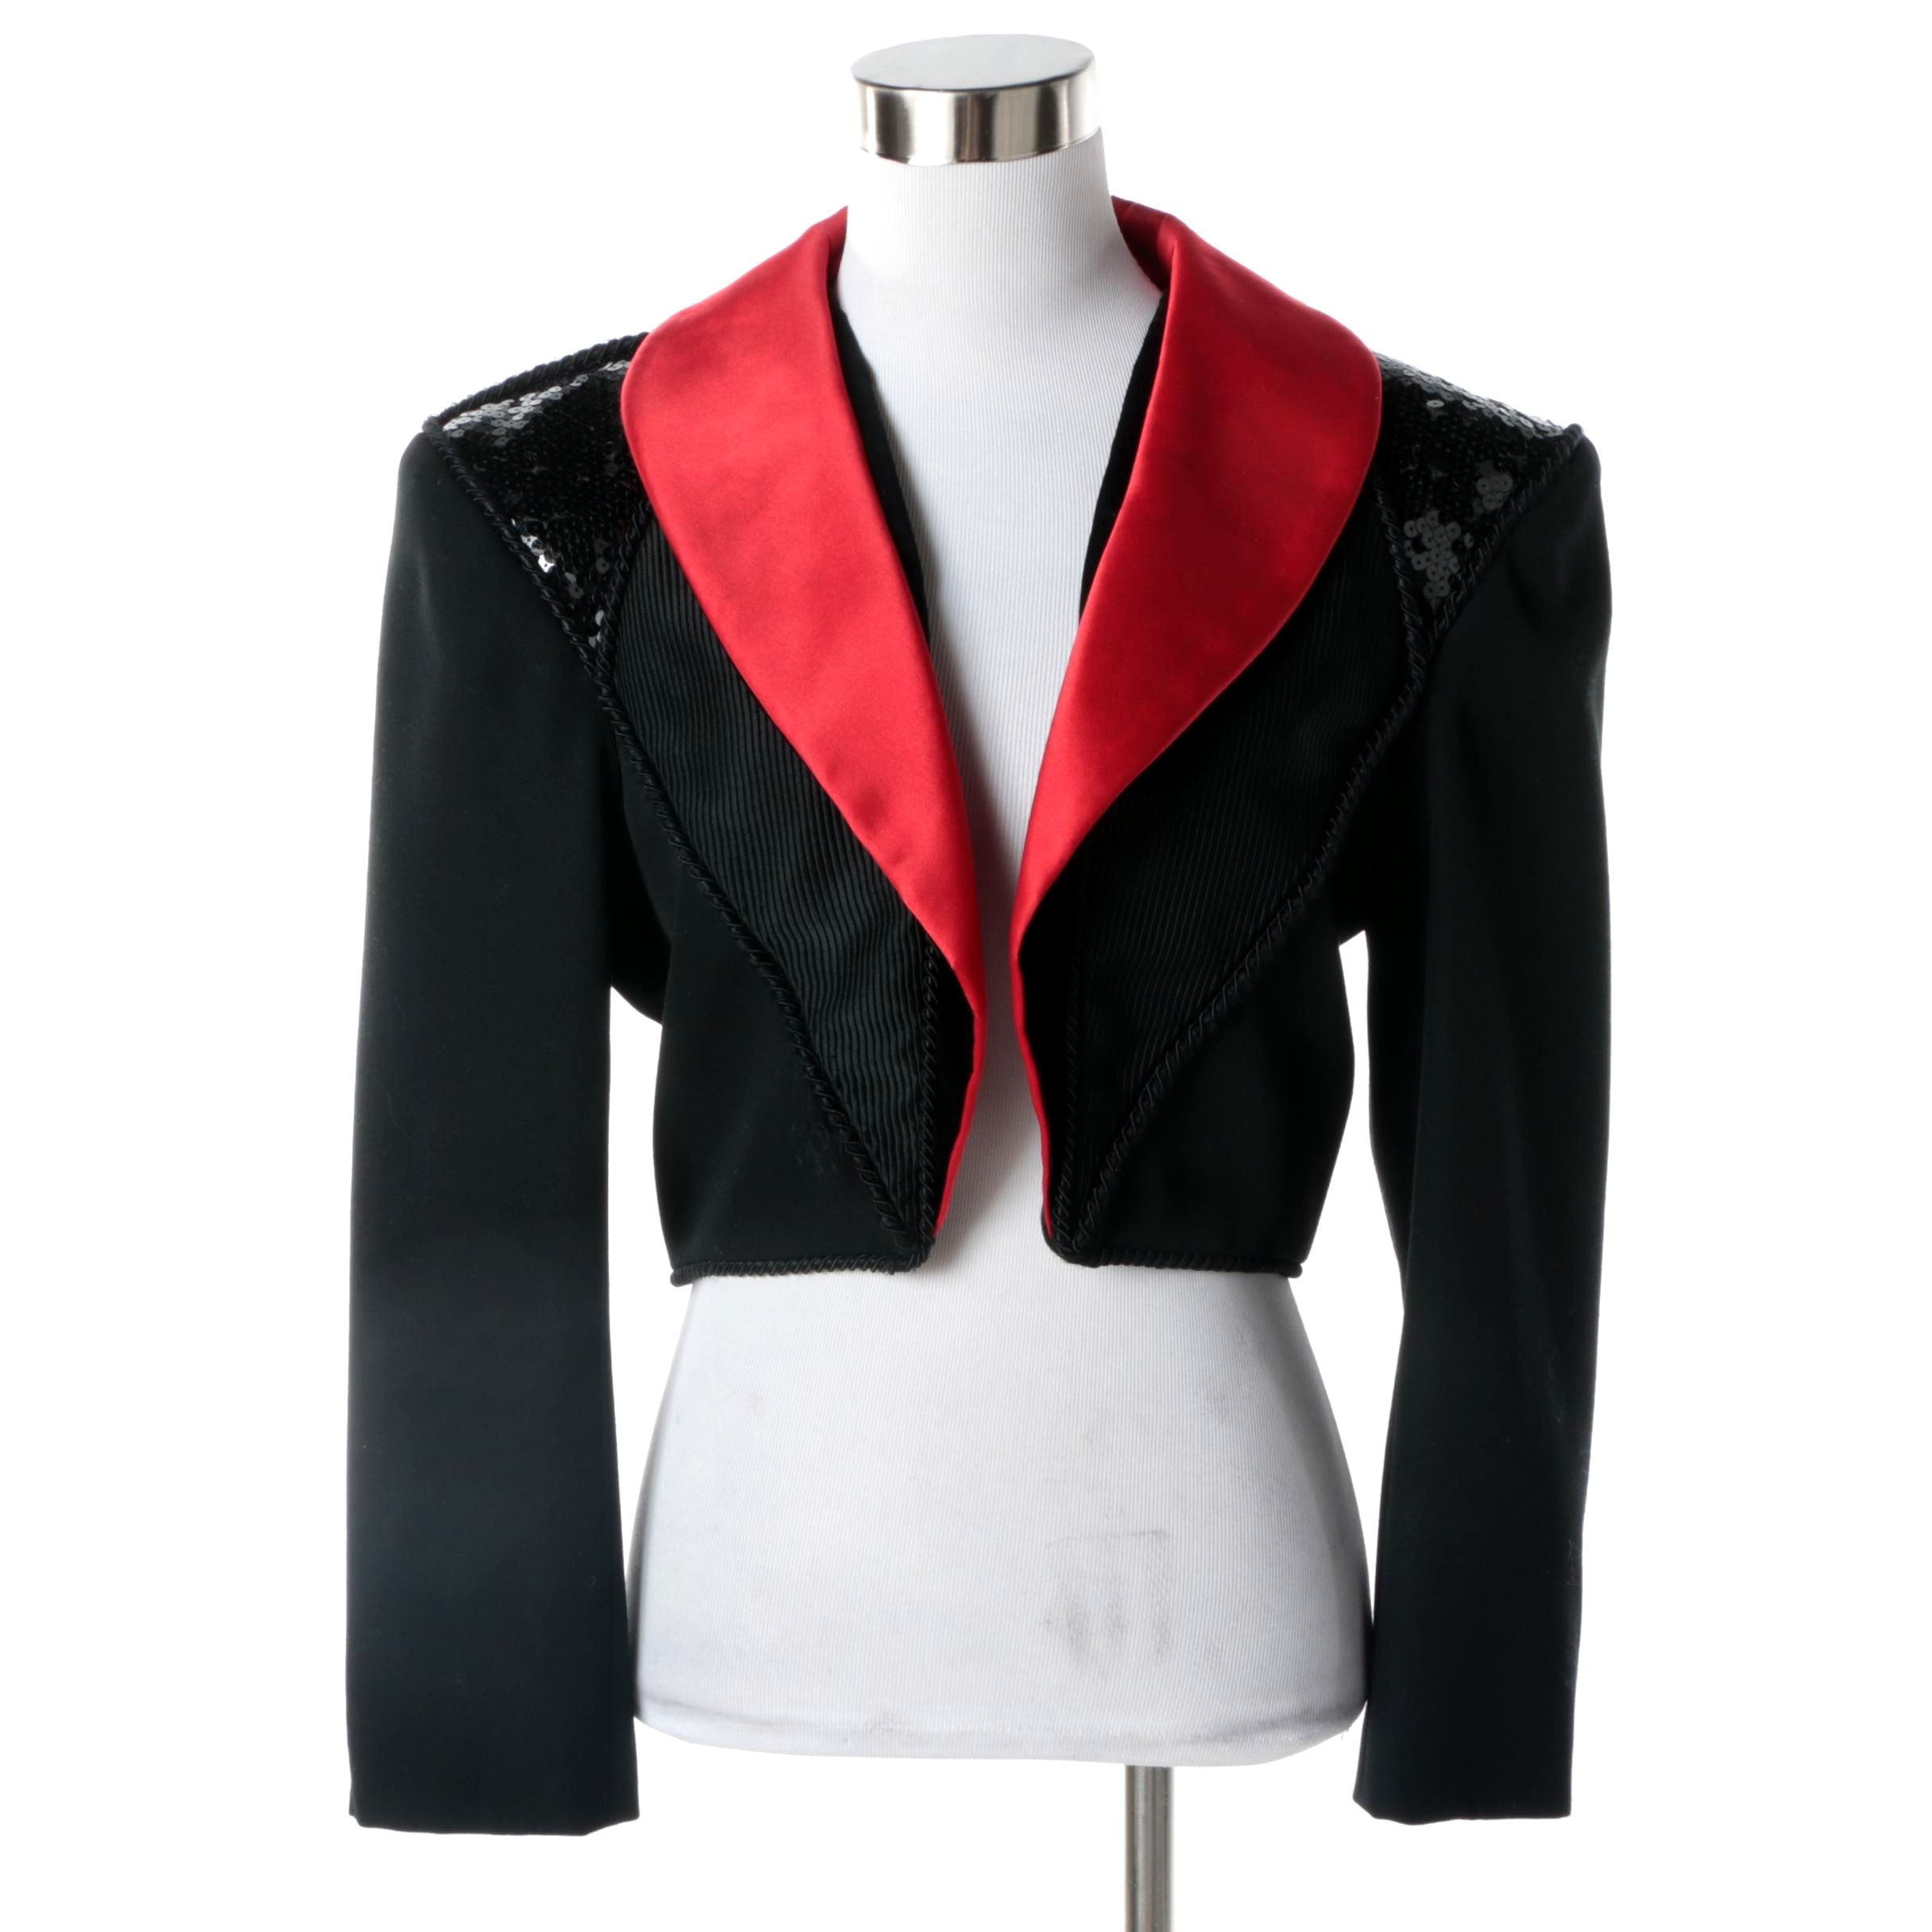 1980s Yves Saint Laurent Rive Gauche Black and Red Cropped Jacket